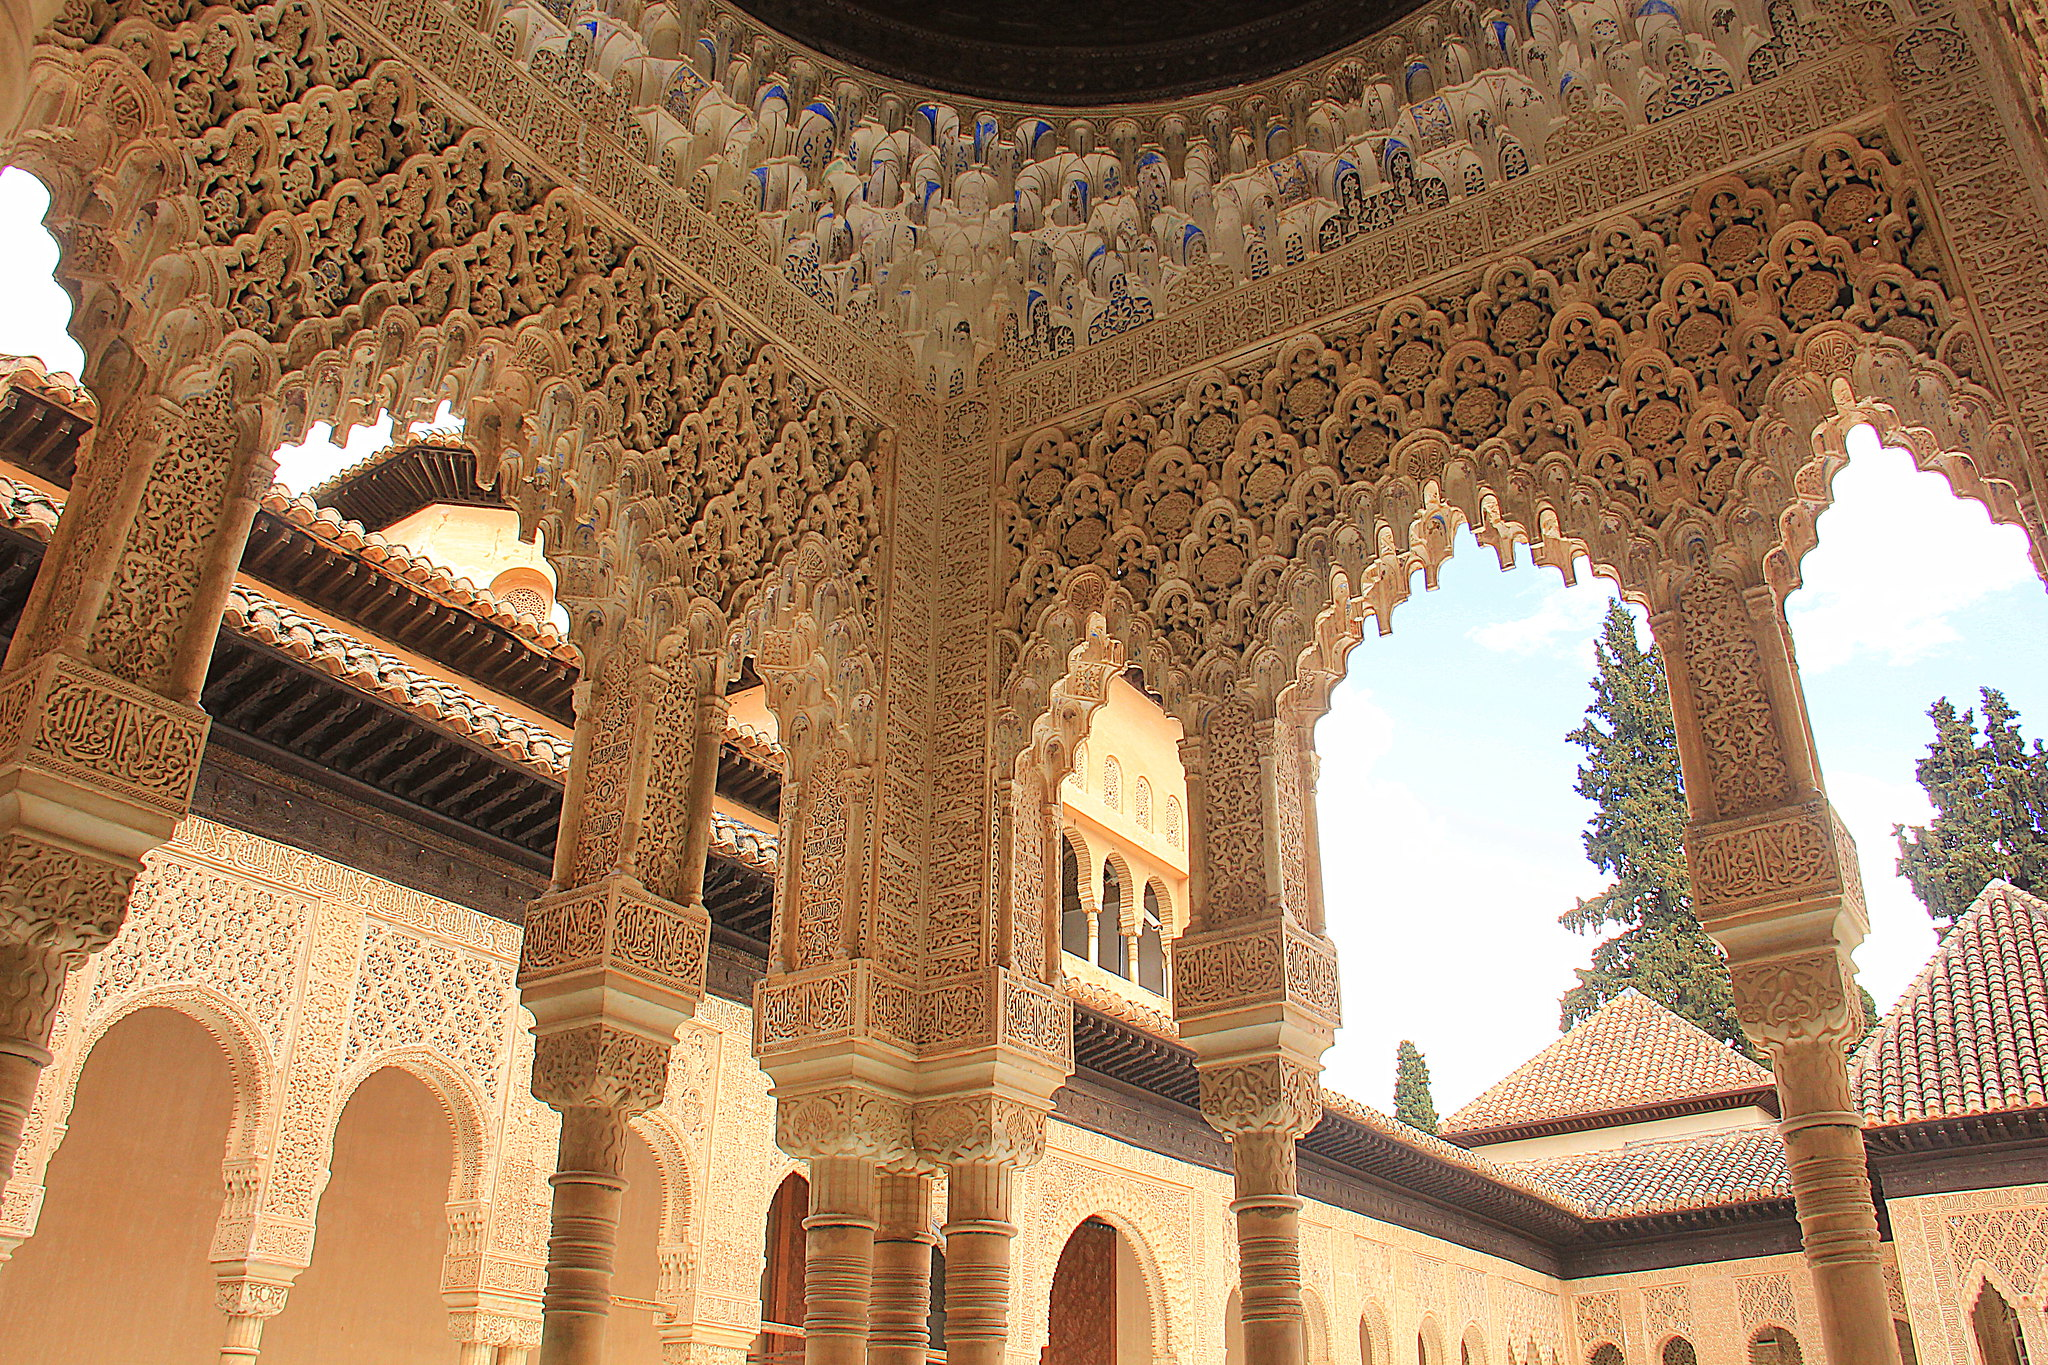 Alhambra is quintessential Moorish Andalusia